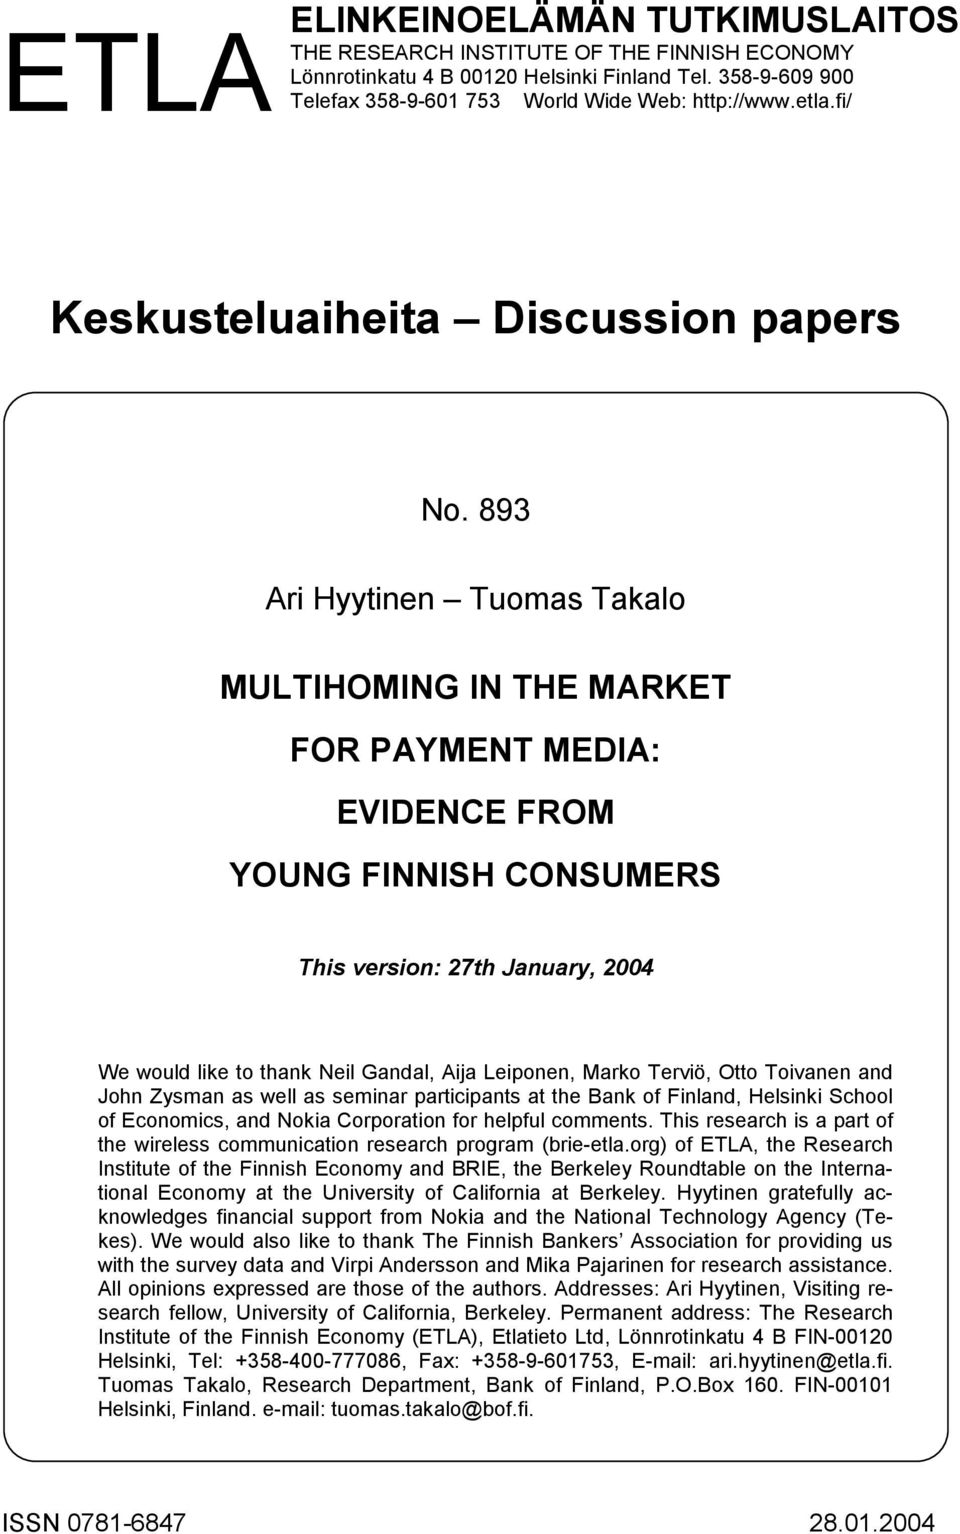 893 Ar Hyytnen Tuomas Takalo MULTIHOMING IN THE MARKET FOR PAYMENT MEDIA: EVIDENCE FROM YOUNG FINNISH CONSUMERS Ths verson: 27th January, 2004 We would lke to thank Nel Gandal, Aja Leponen, Marko